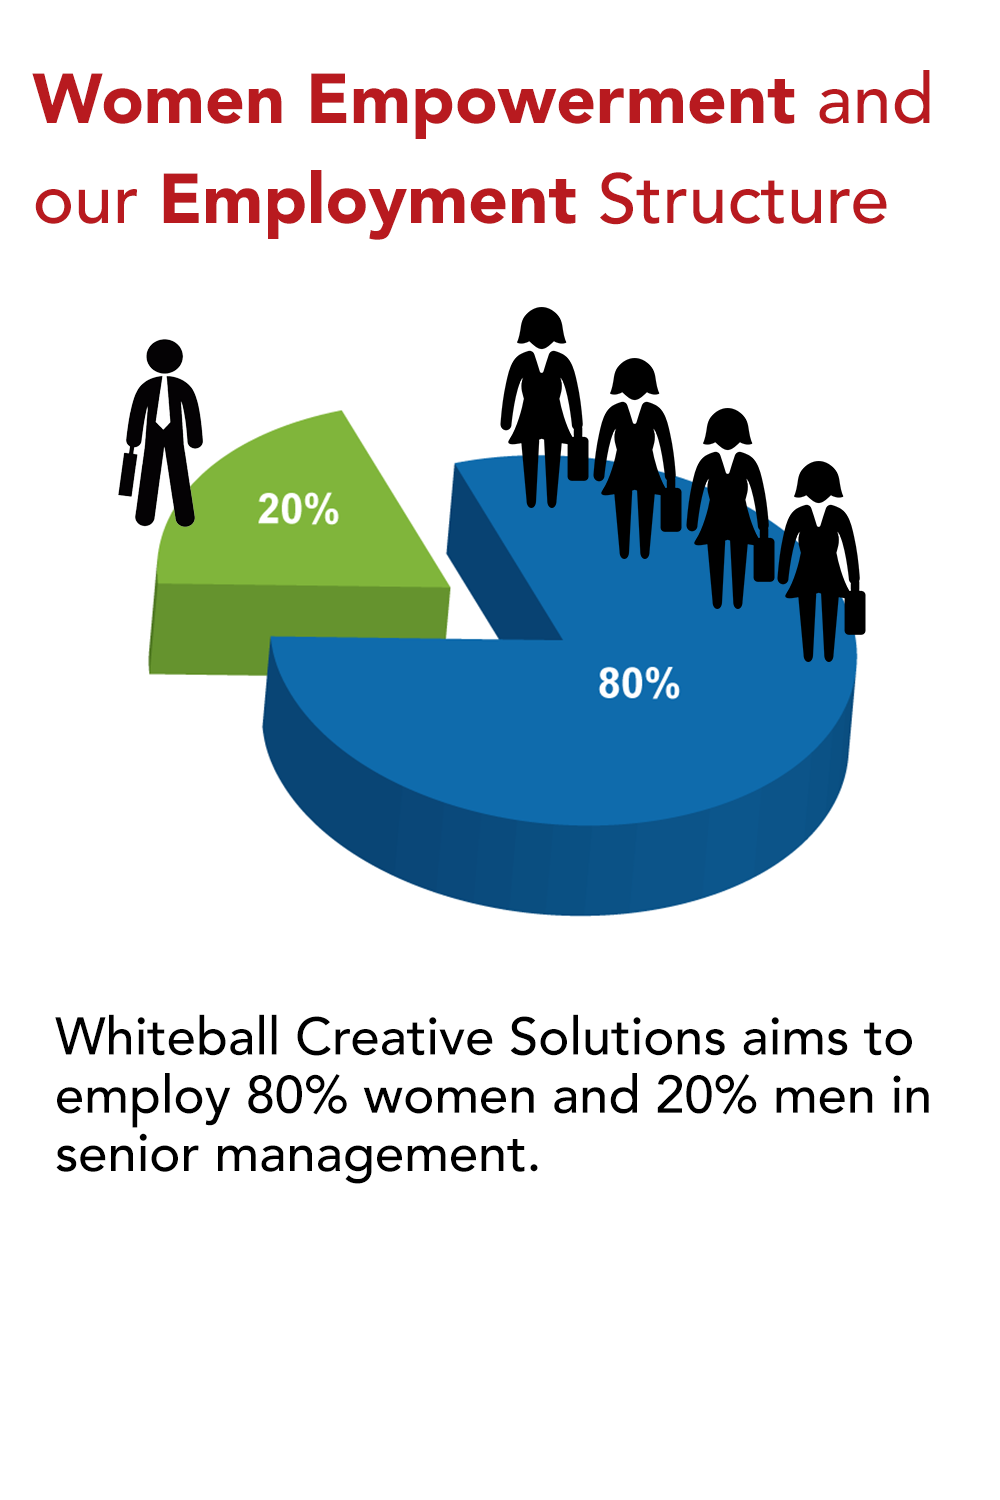 Whiteball Creative Solutions, Women Empowerment, employment, diversity, sustainability, employment structure